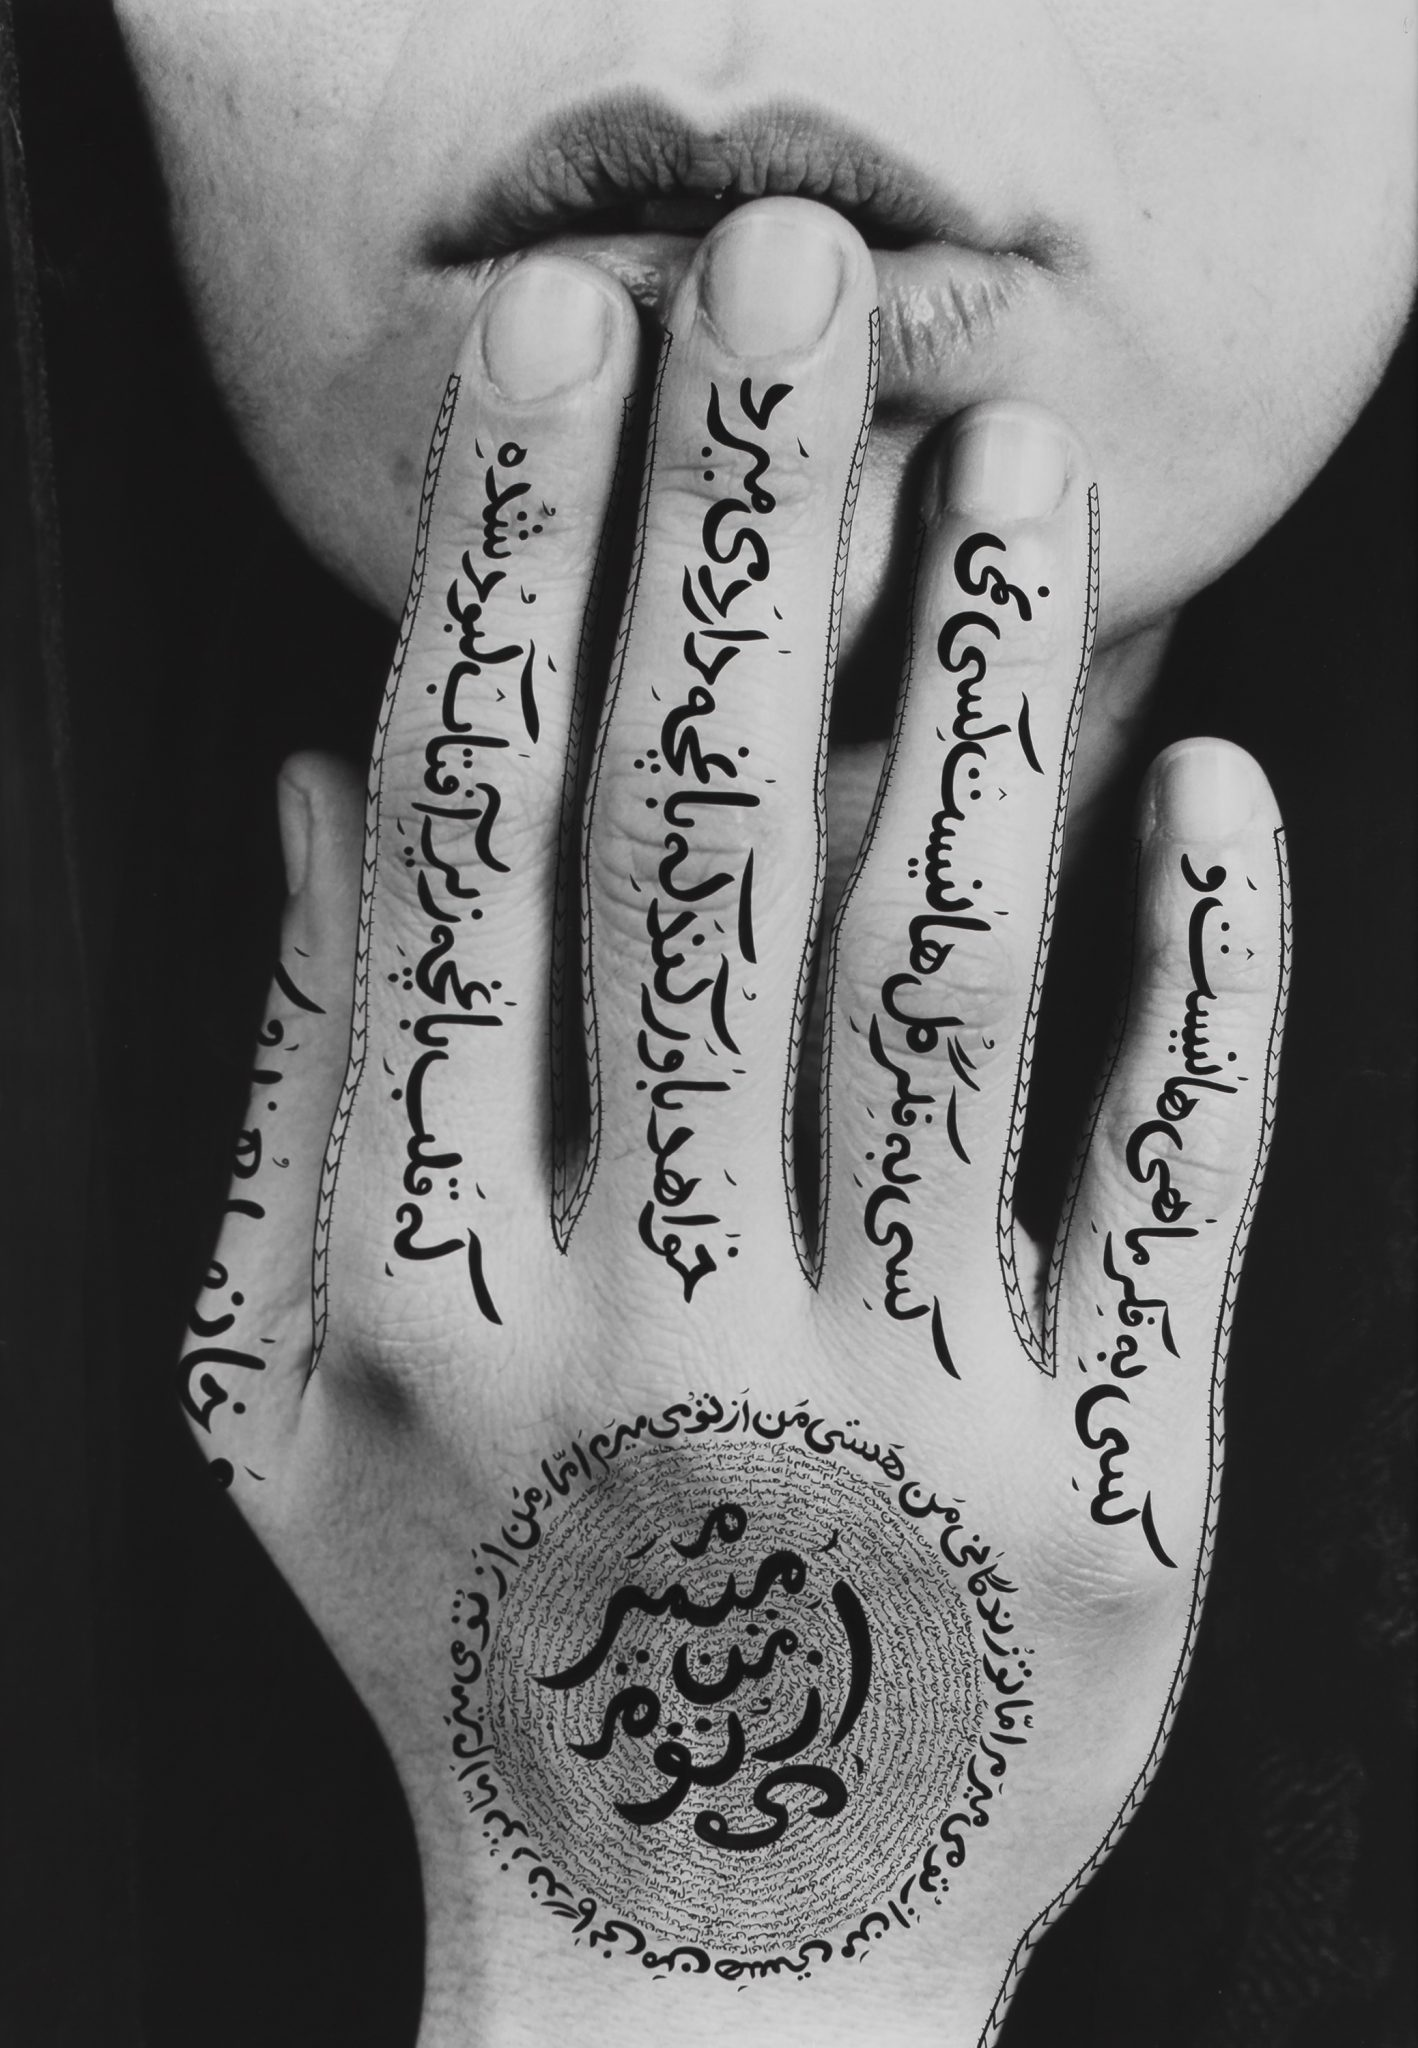 Shirin Neshat, Untitled (Women of Allah), 1996. © Shirin Neshat/Courtesy the artist and Gladstone Gallery, New York and Brussels